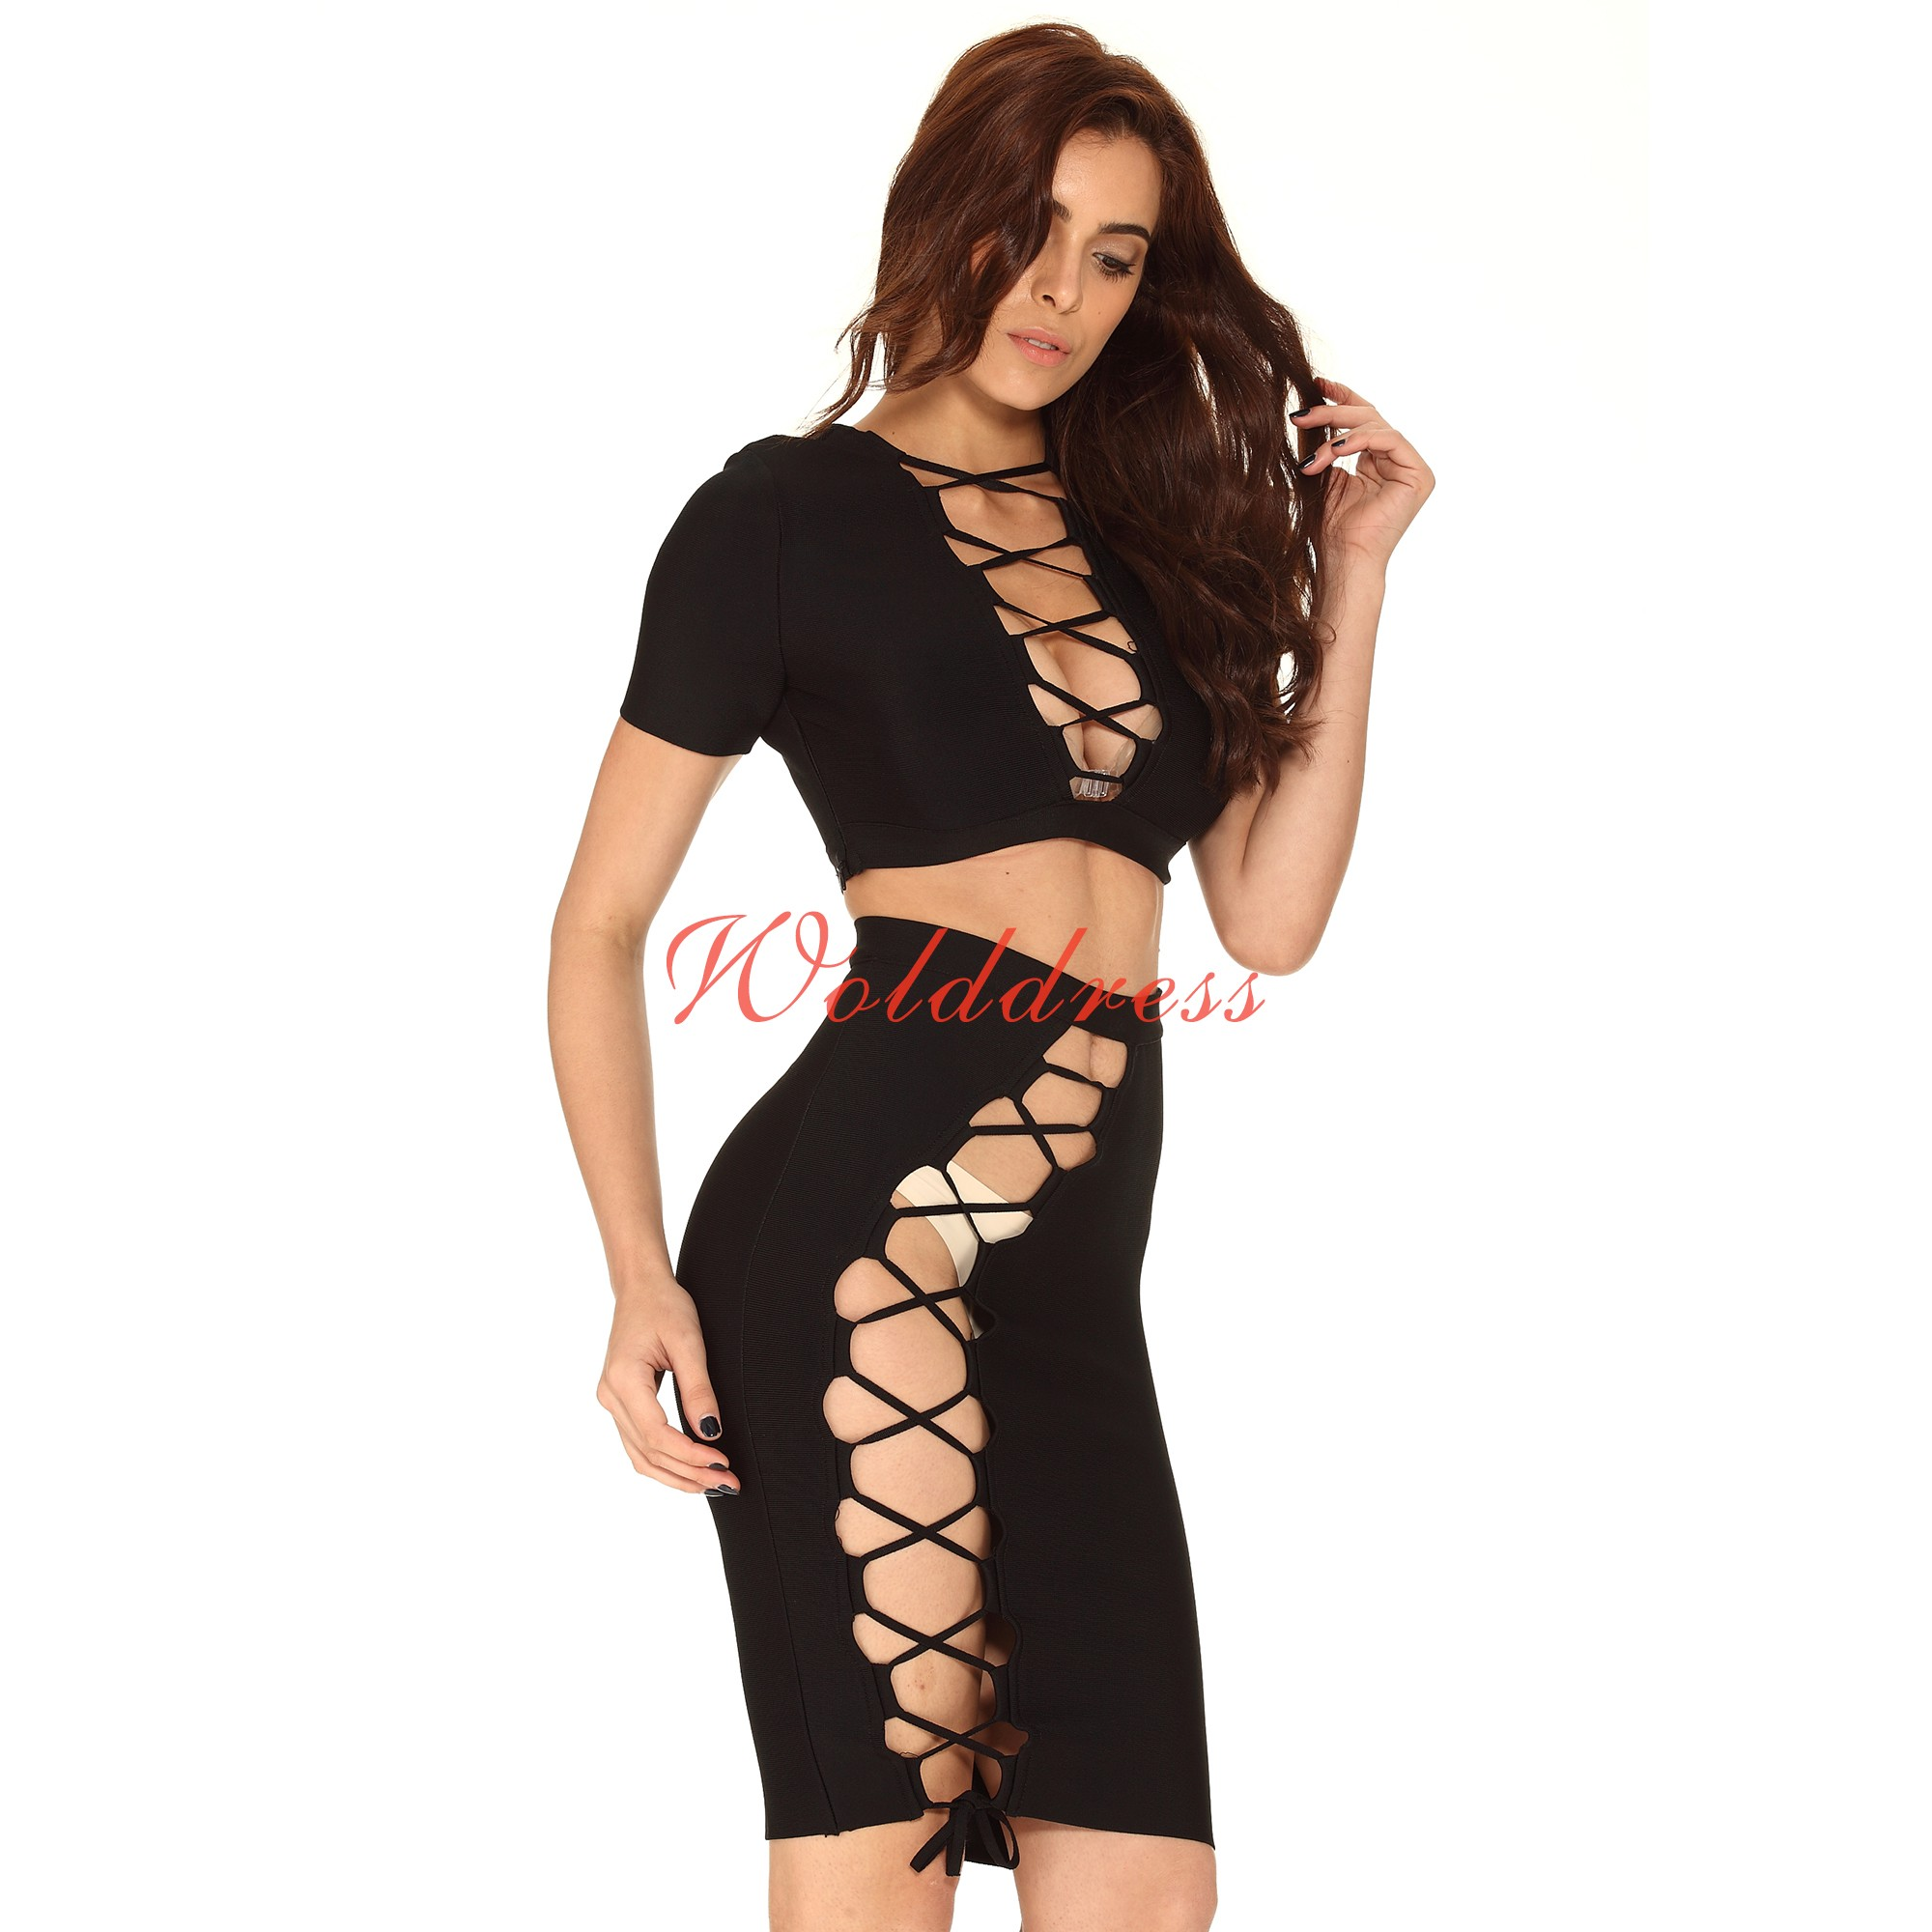 Sexy Strapless Shortsleeve Mini Black Cut Out Bandage Dress HT1626-Black